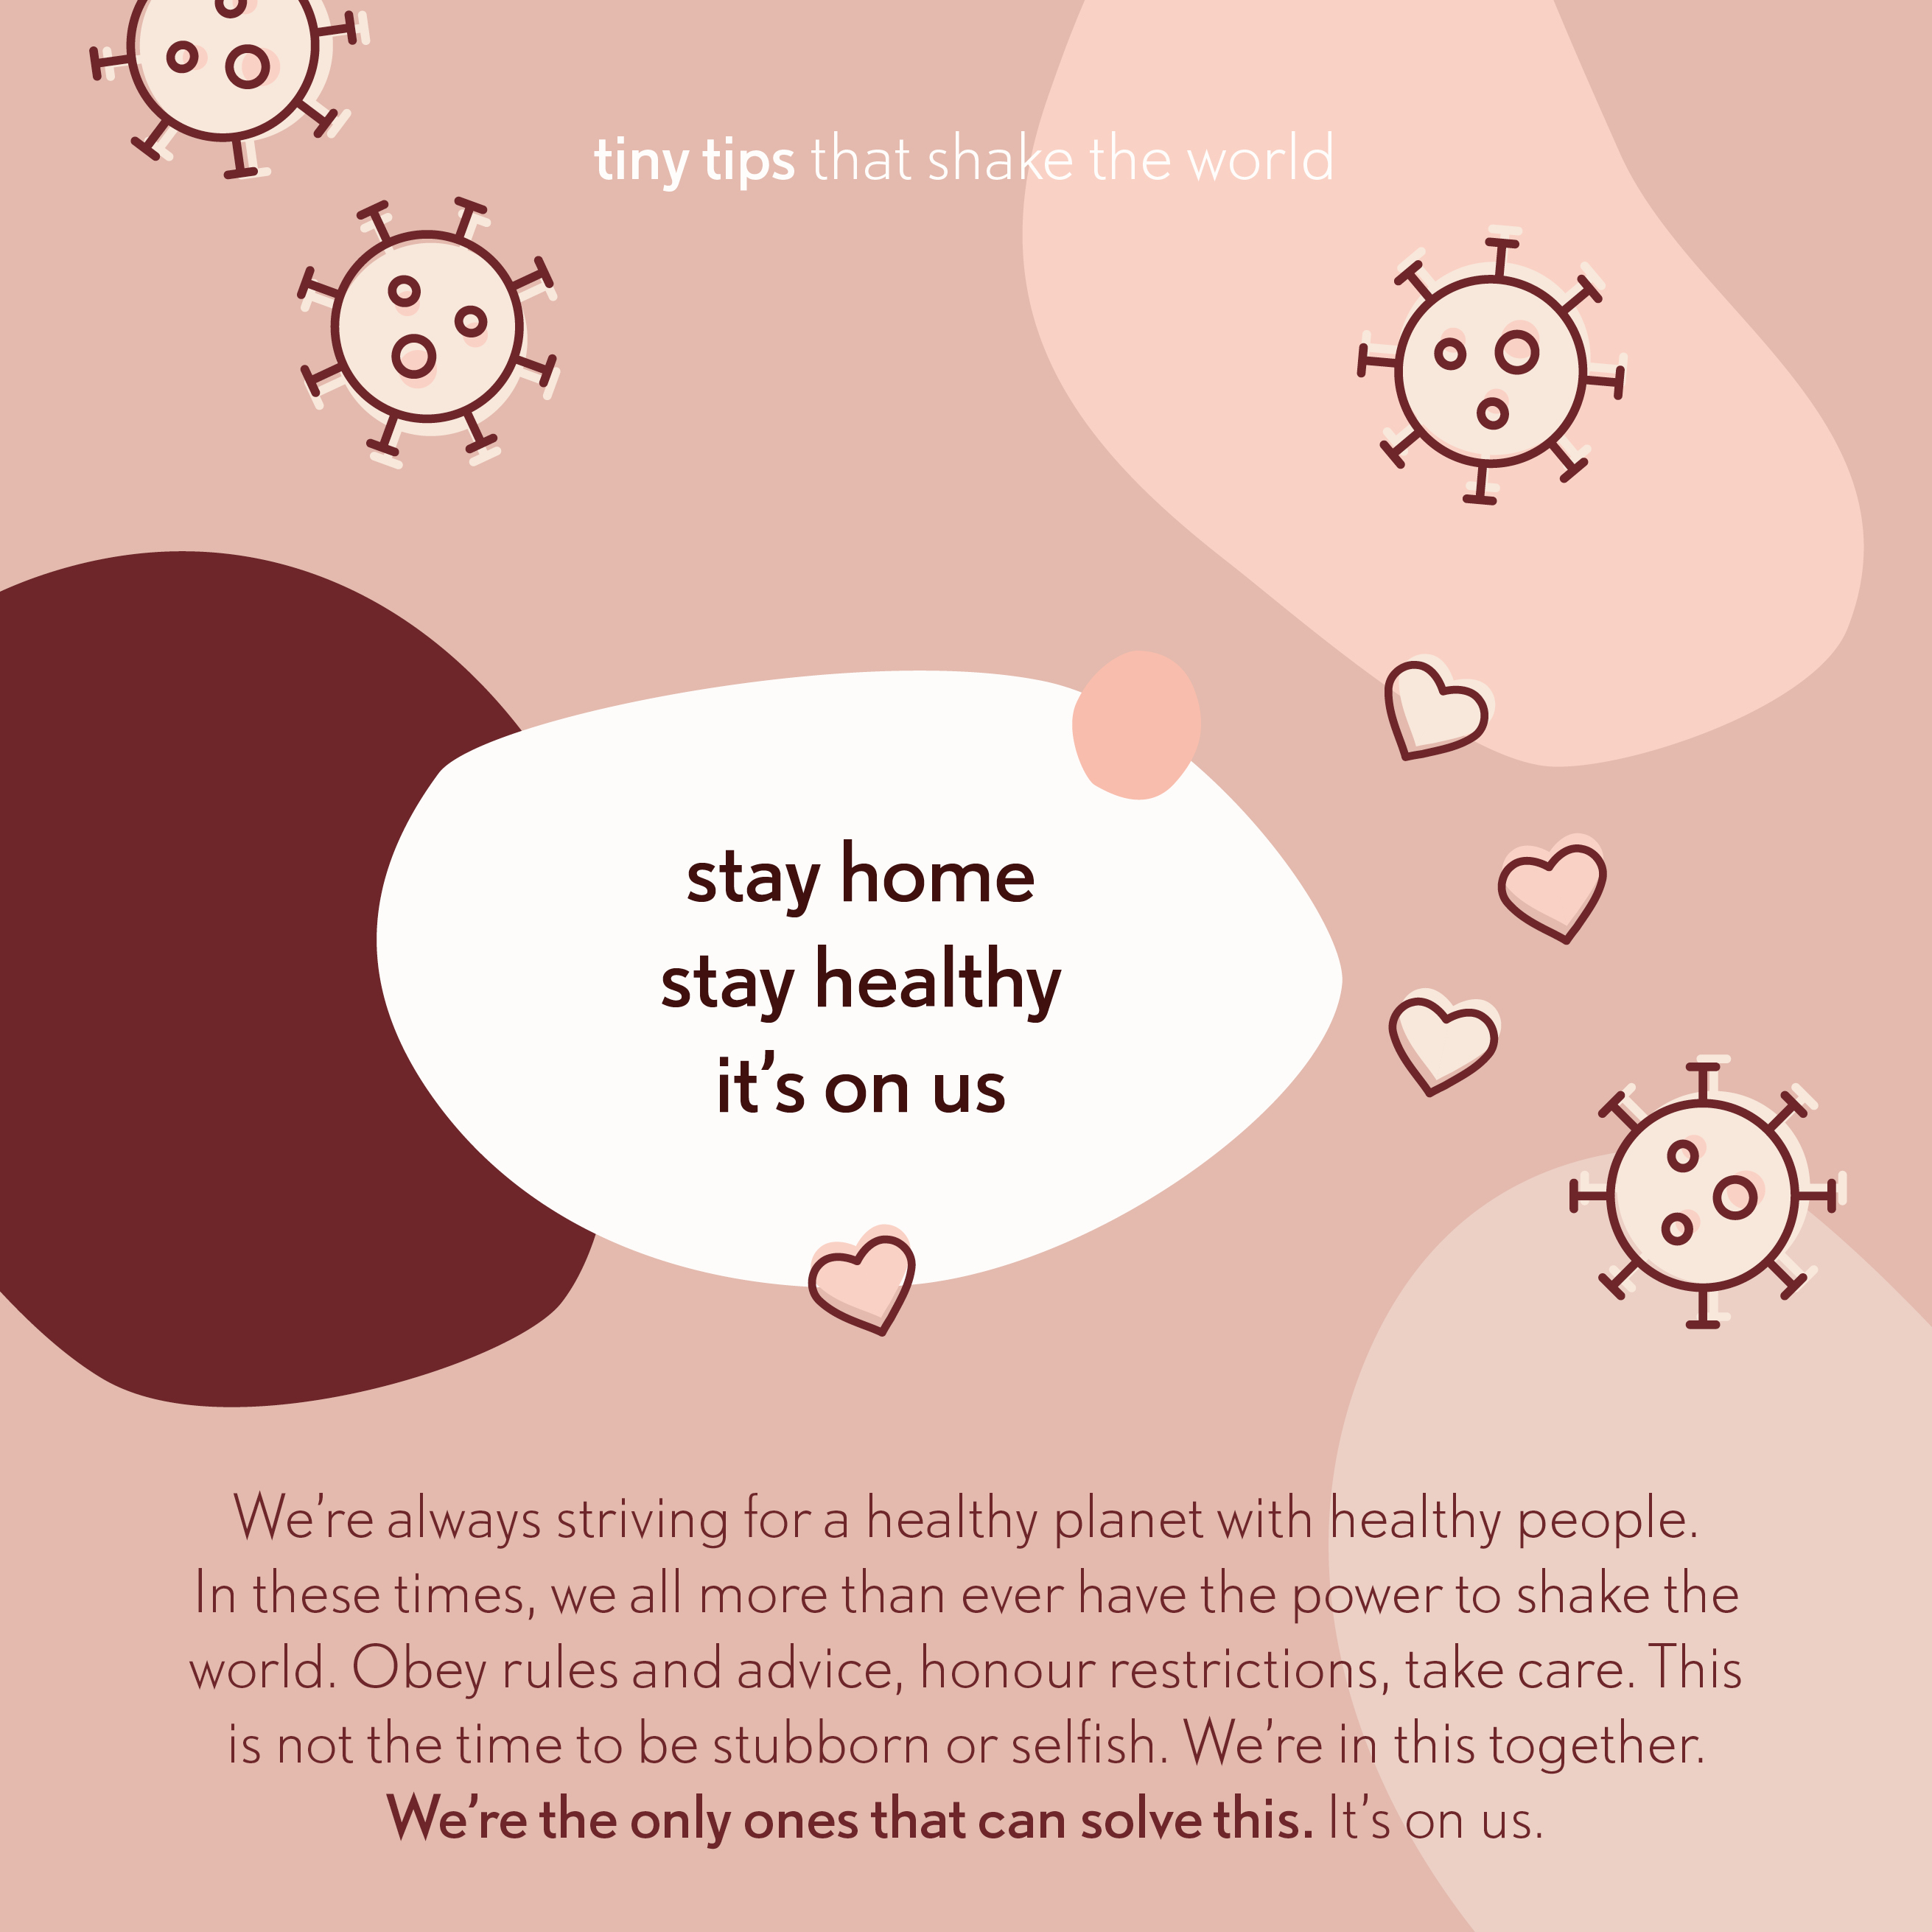 Stay home stay healthy it's on us - Corona Virus - Tiny tips that shake the world